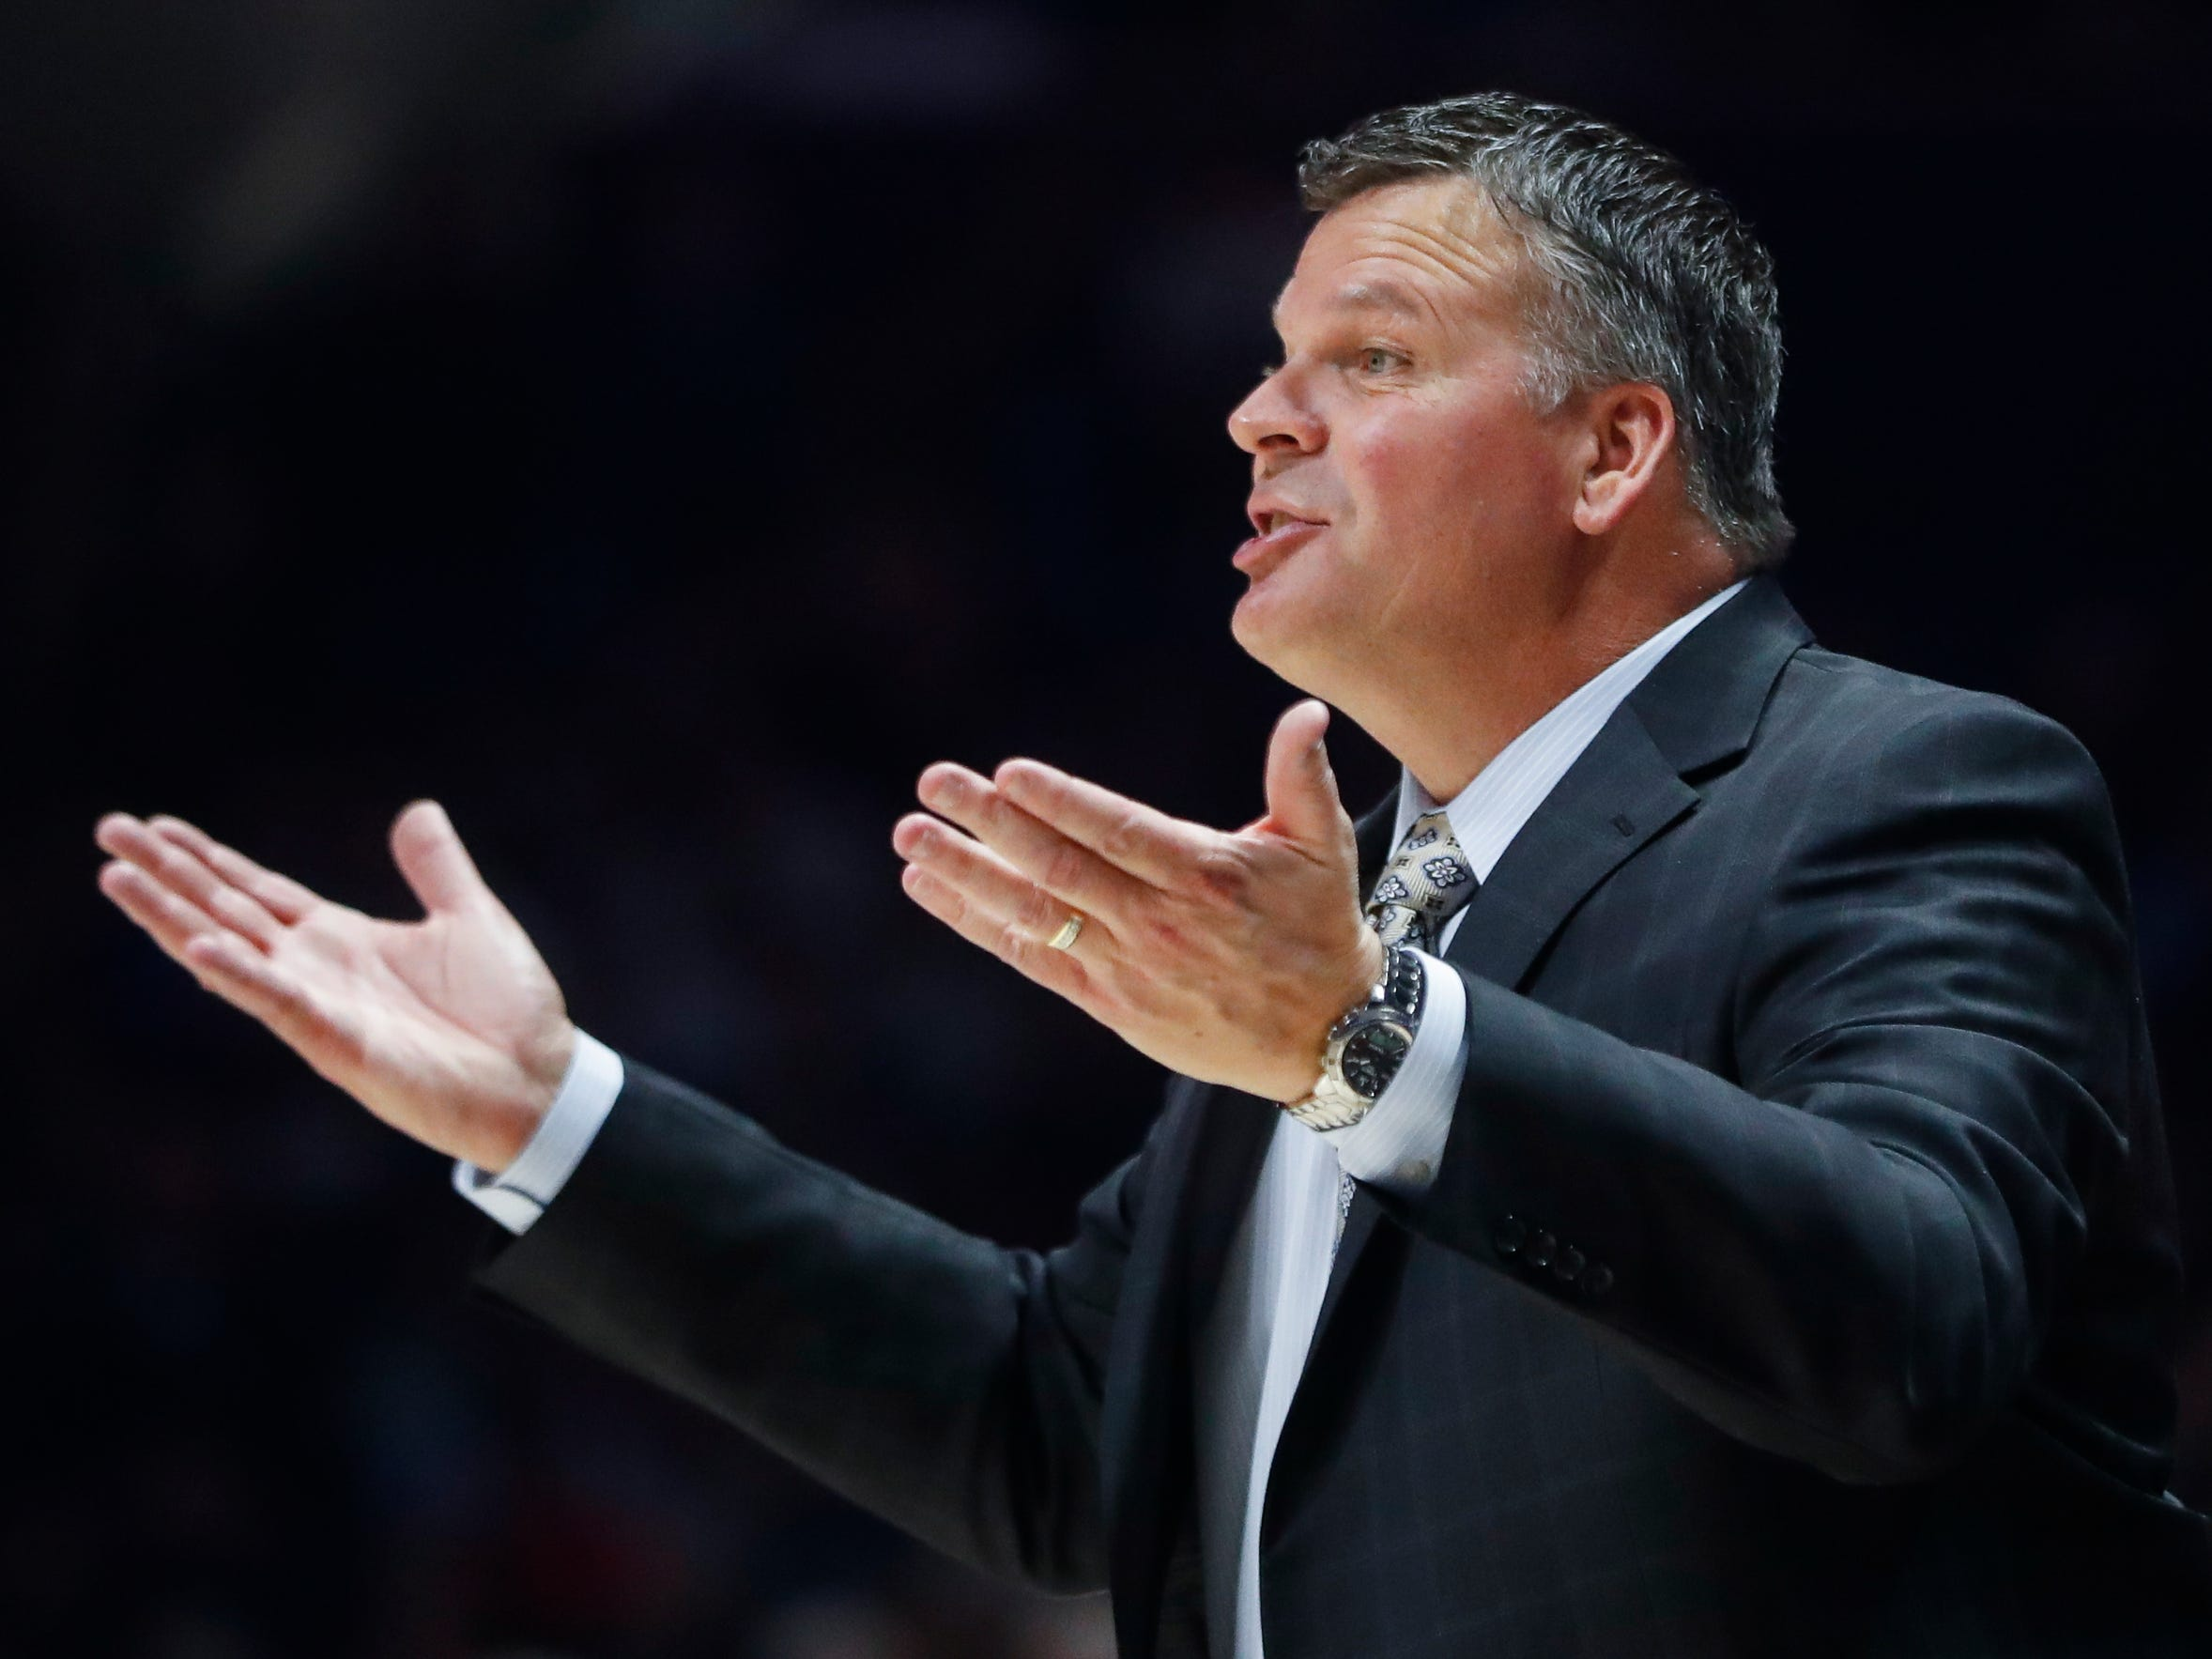 Creighton head men's basketball coach Greg McDermott directs his players from the bench in the first half of an NCAA college basketball game against Xavier on Jan. 13, 2018, in Cincinnati. (AP Photo/John Minchillo)